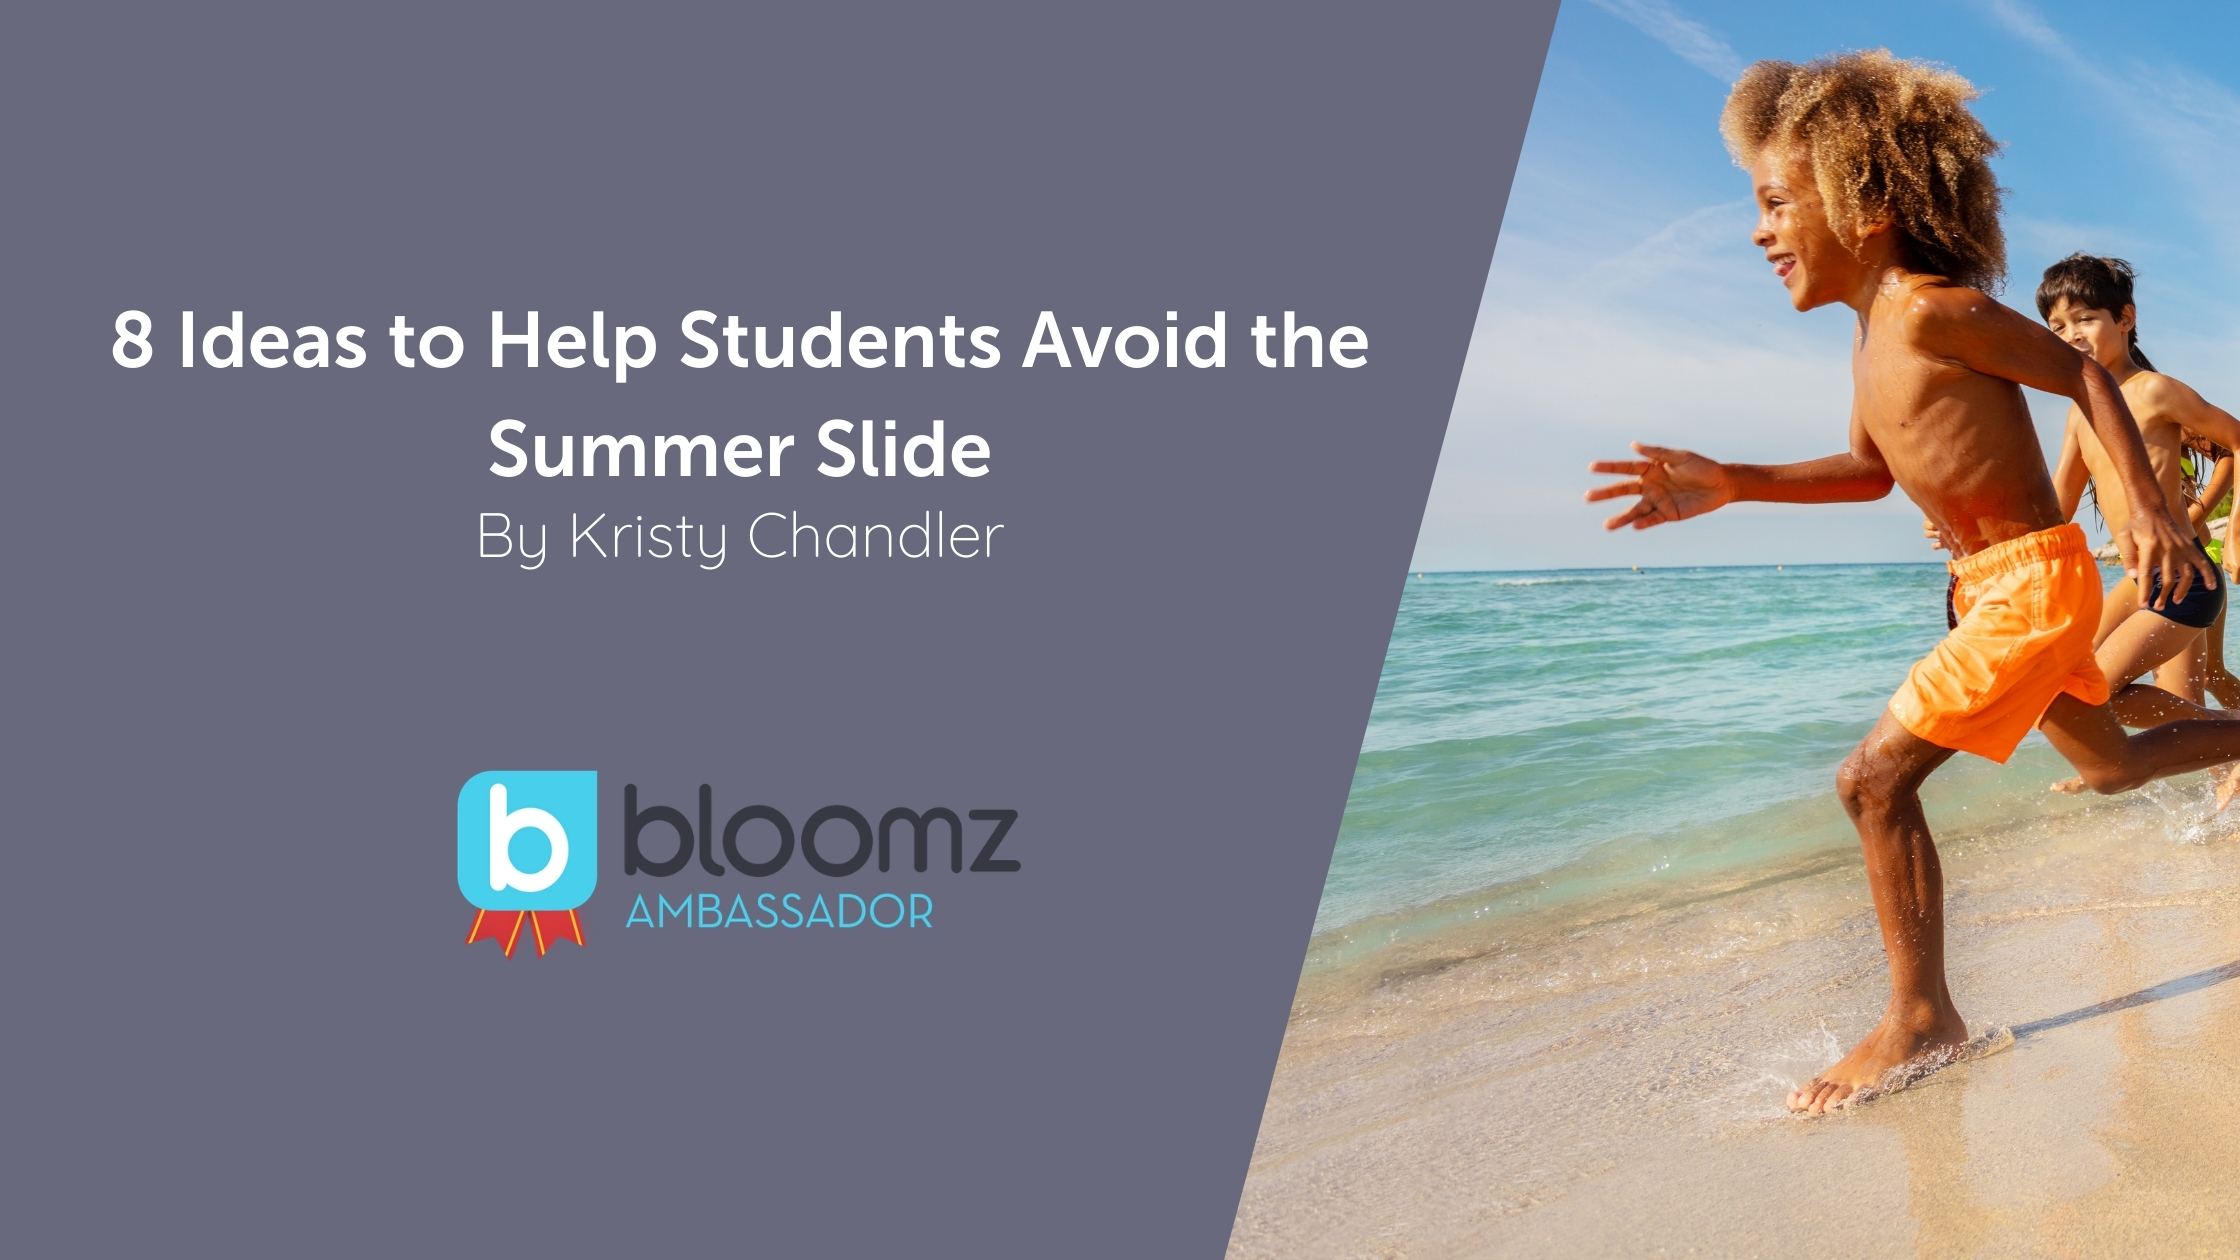 8 Ideas to Help Students Avoid the Summer Slide